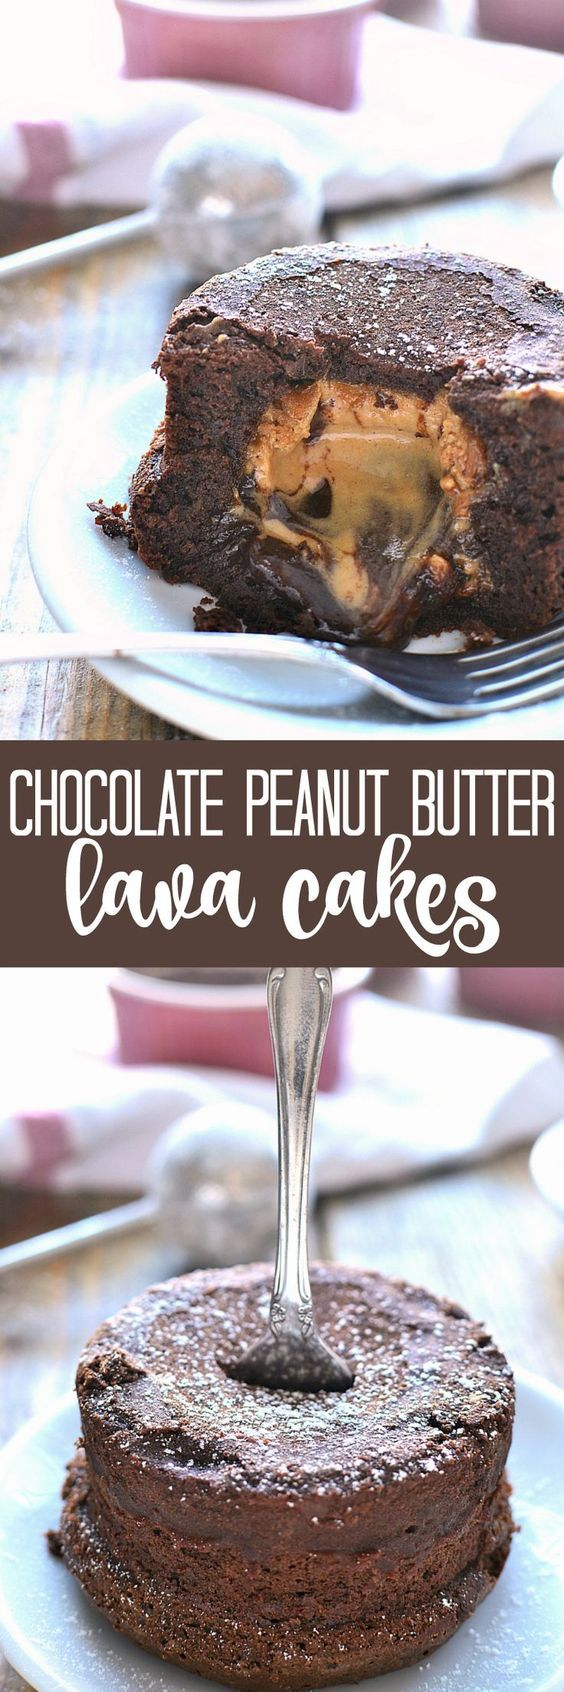 Chocolate Peanut Butter Lava Cakes combine two classic flavors in one deliciously ooey gooey dessert.